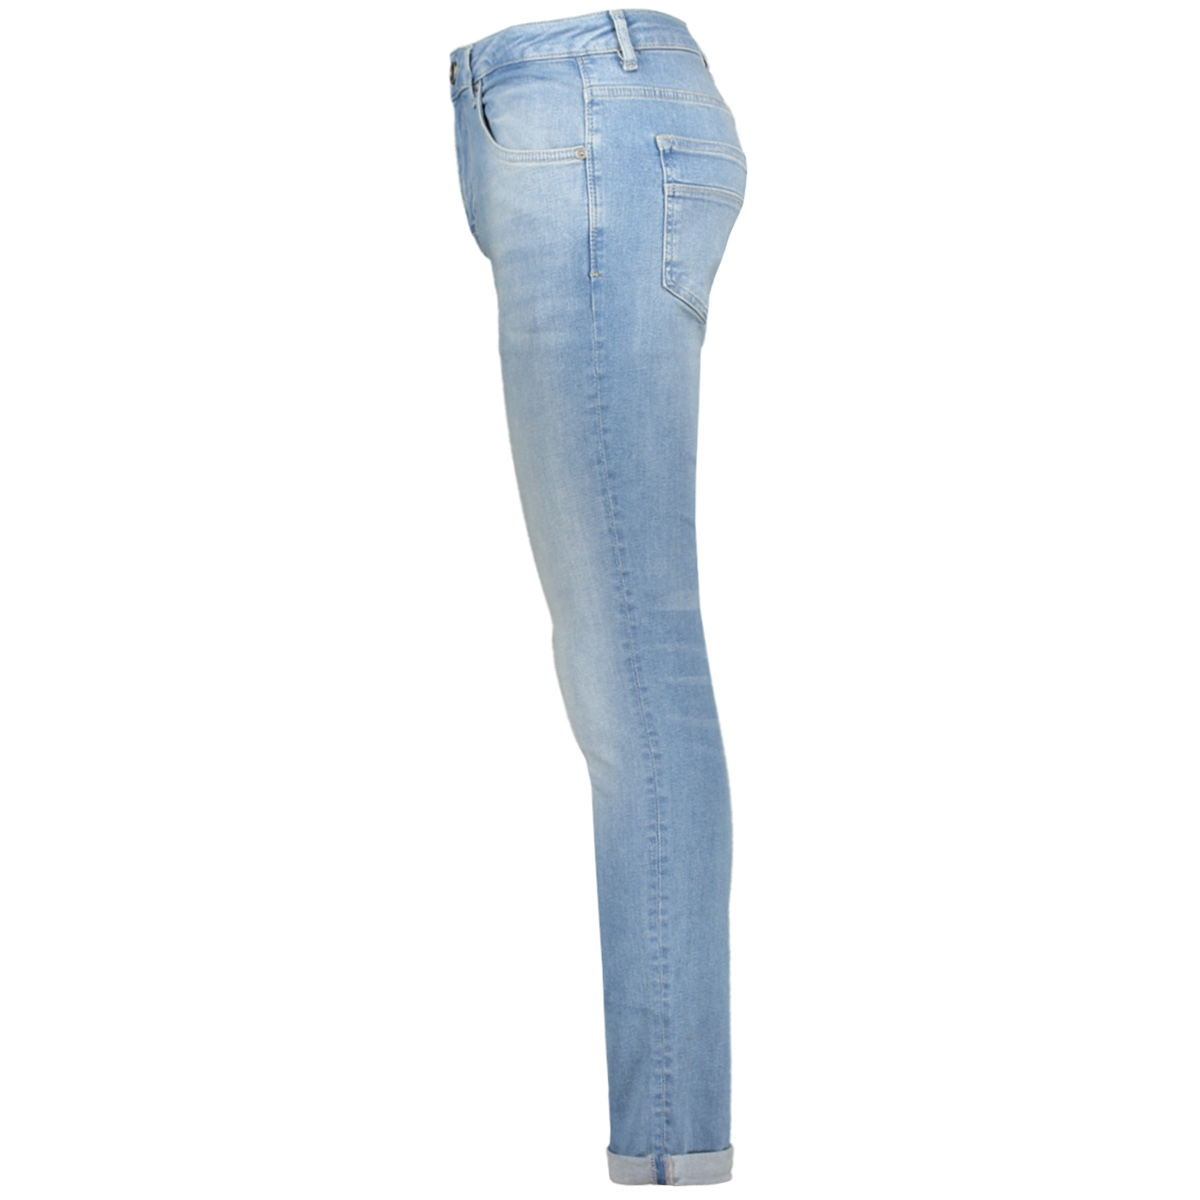 bates denim 74628 cars jeans 75 bleached used